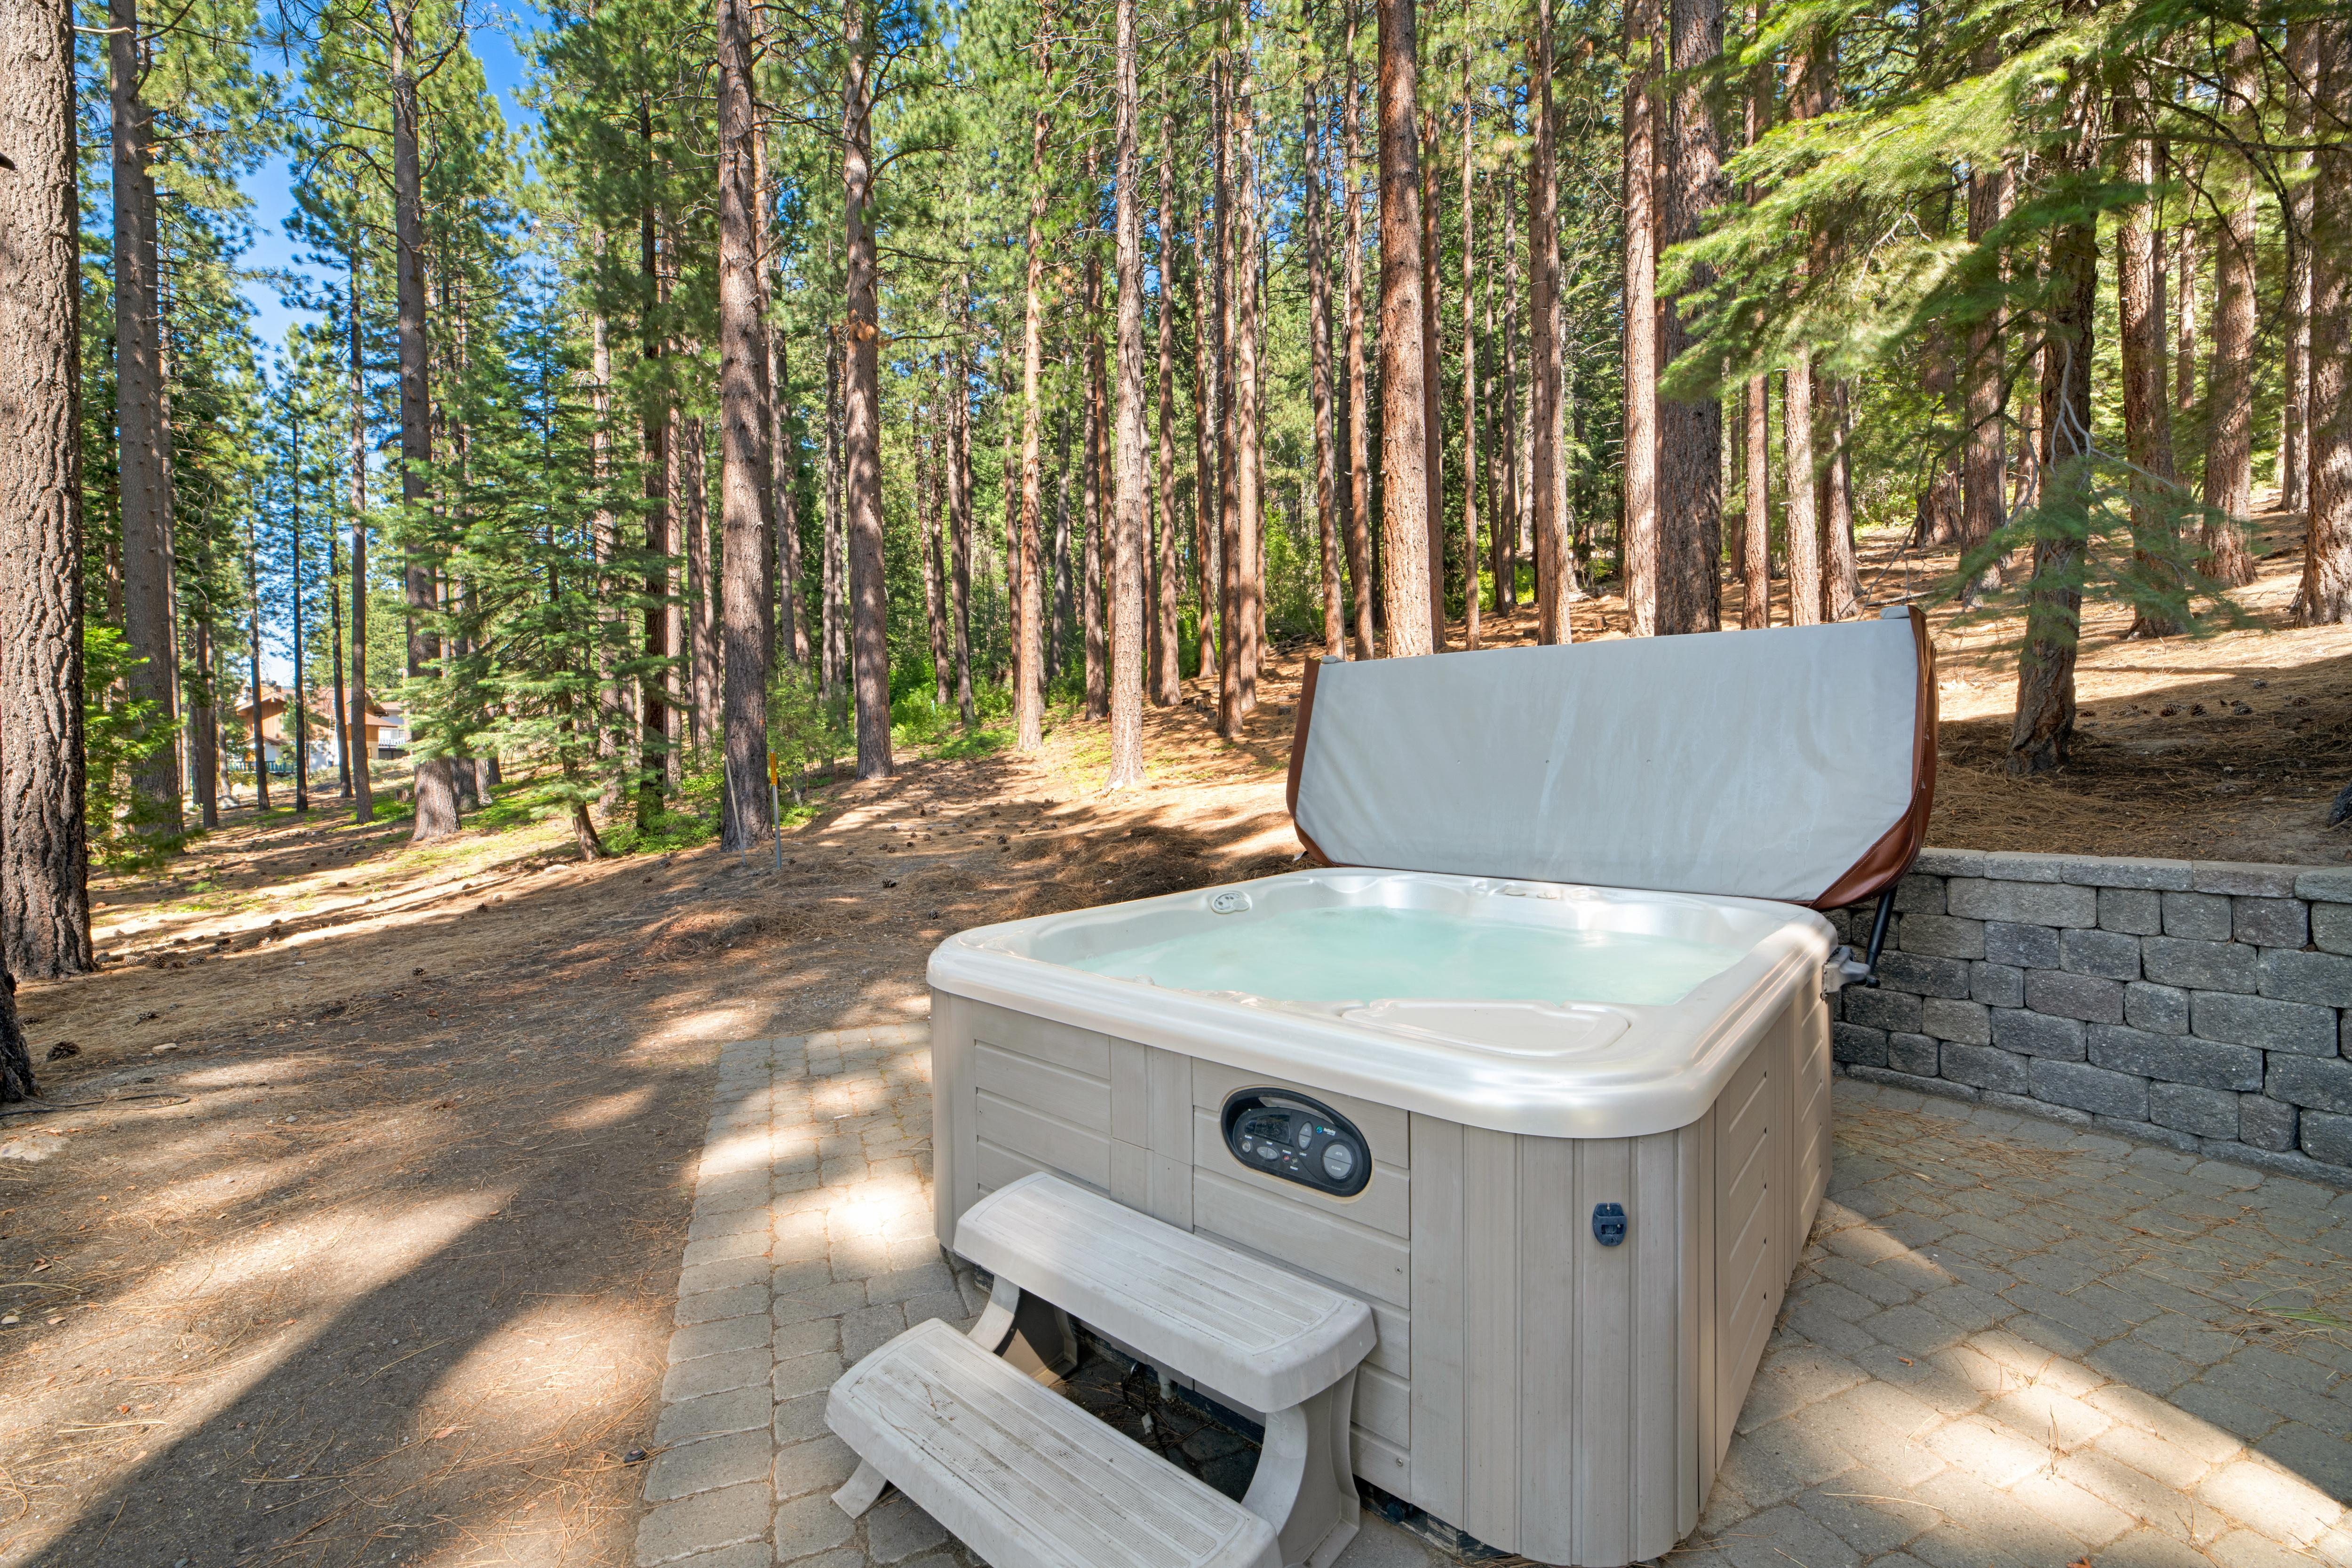 Soak in the hot tub after a day of adventure.